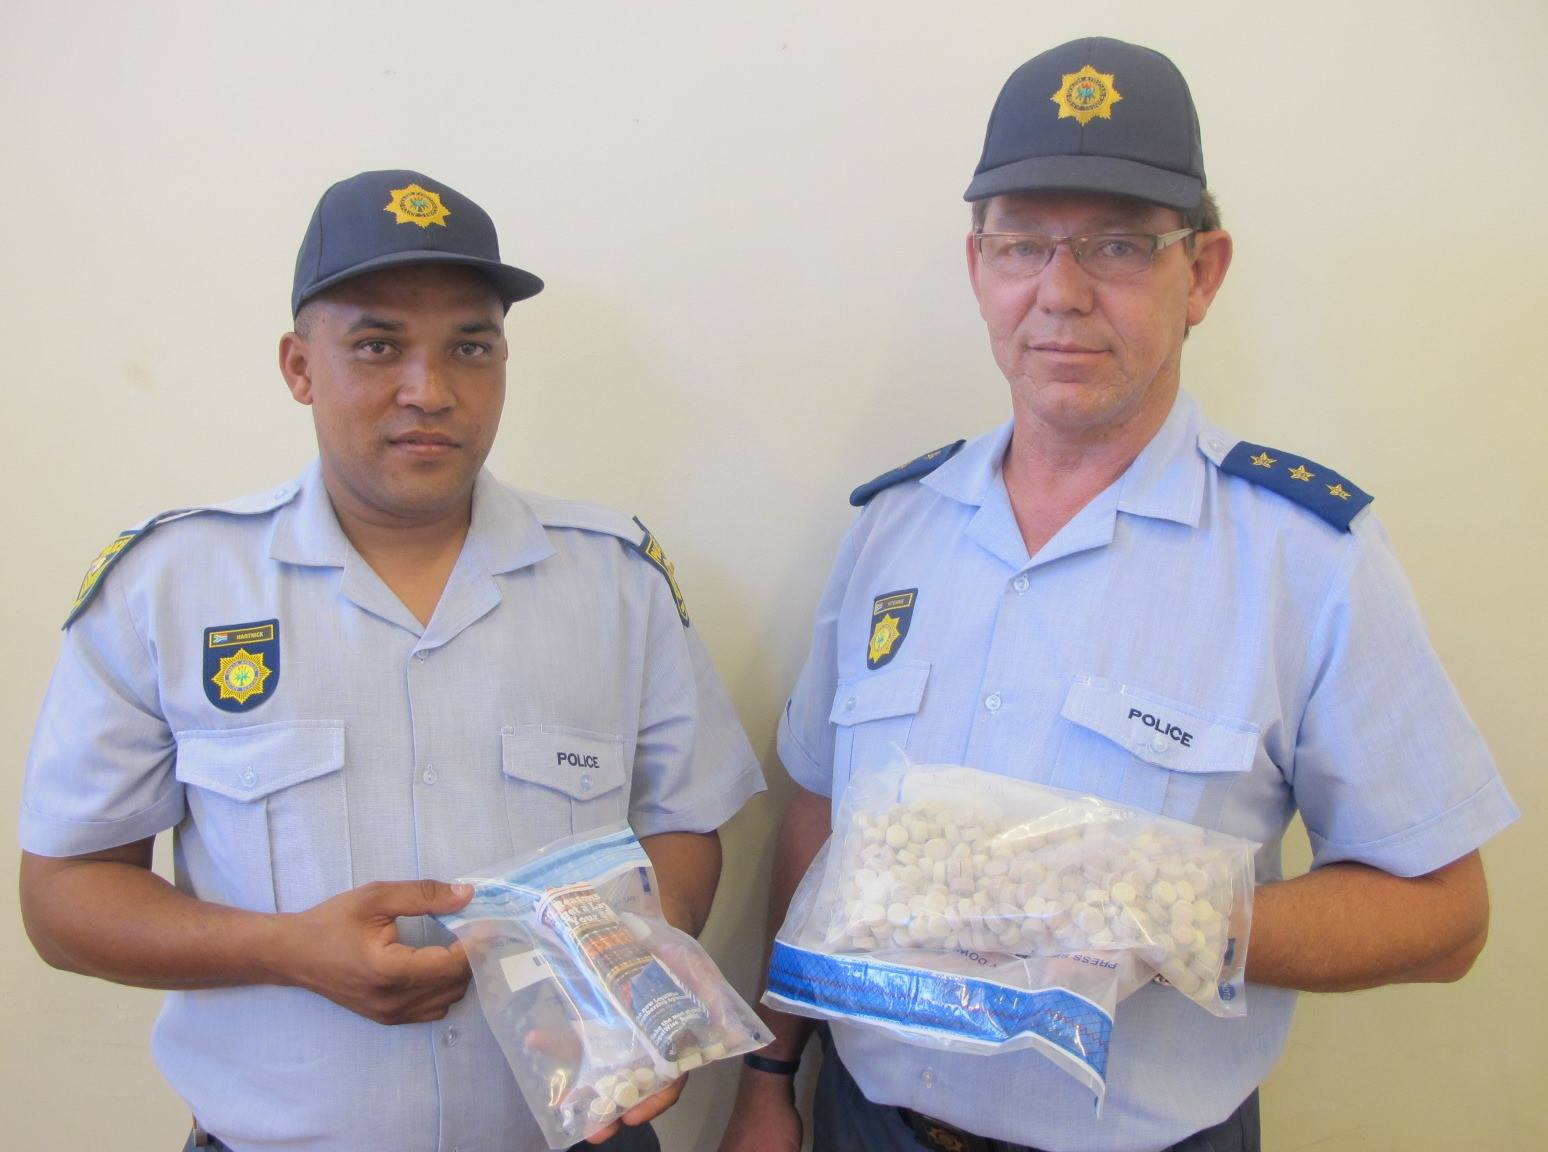 Drugs with an estimated value of R71 000 confiscated in Knysna.